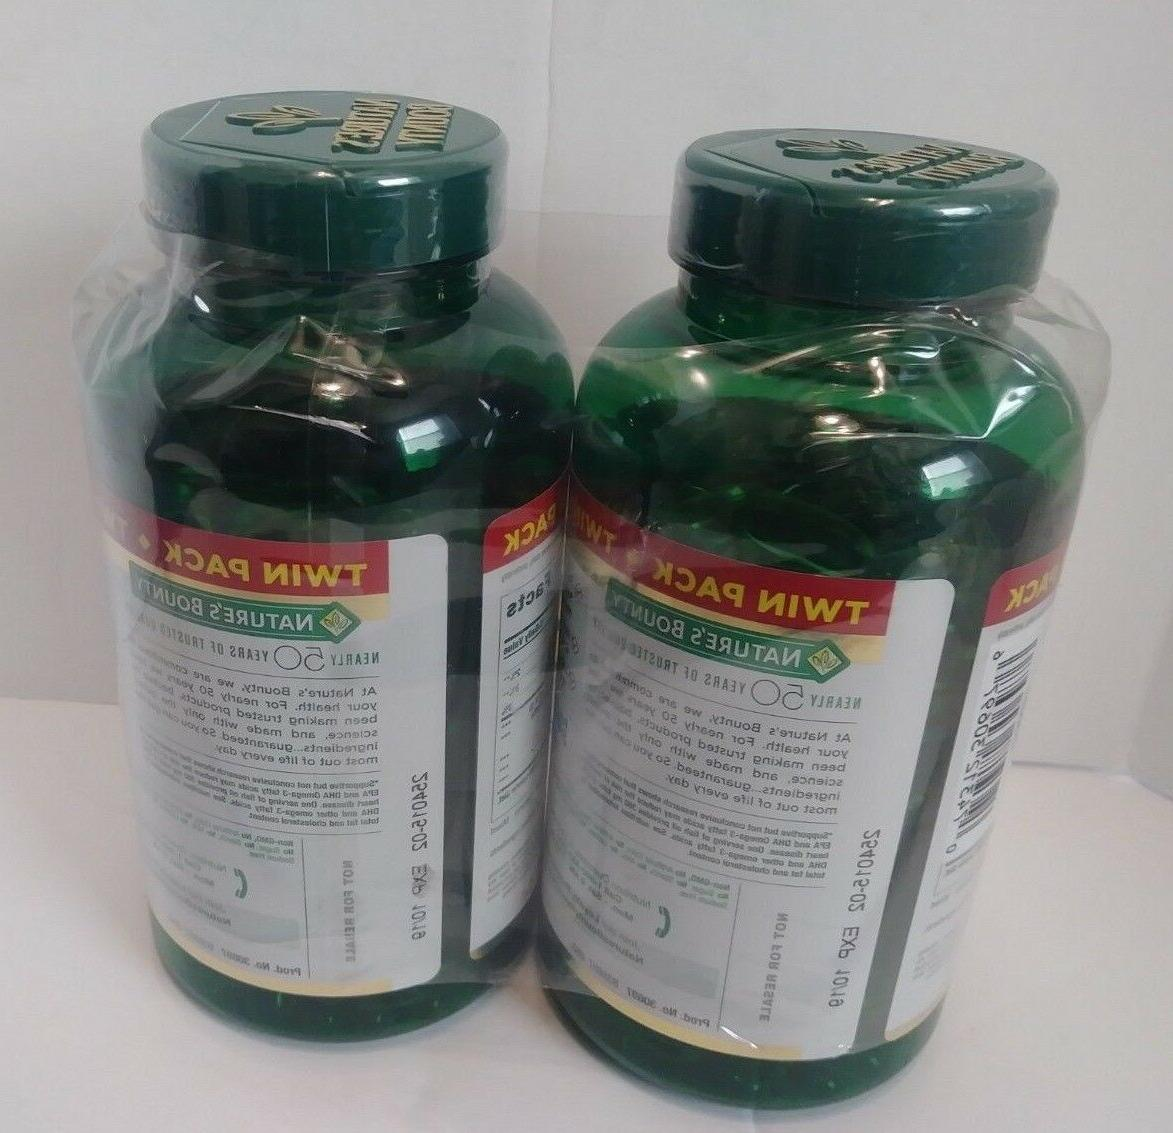 TWIN PACK Nature's Fish Oil mg 180 Each